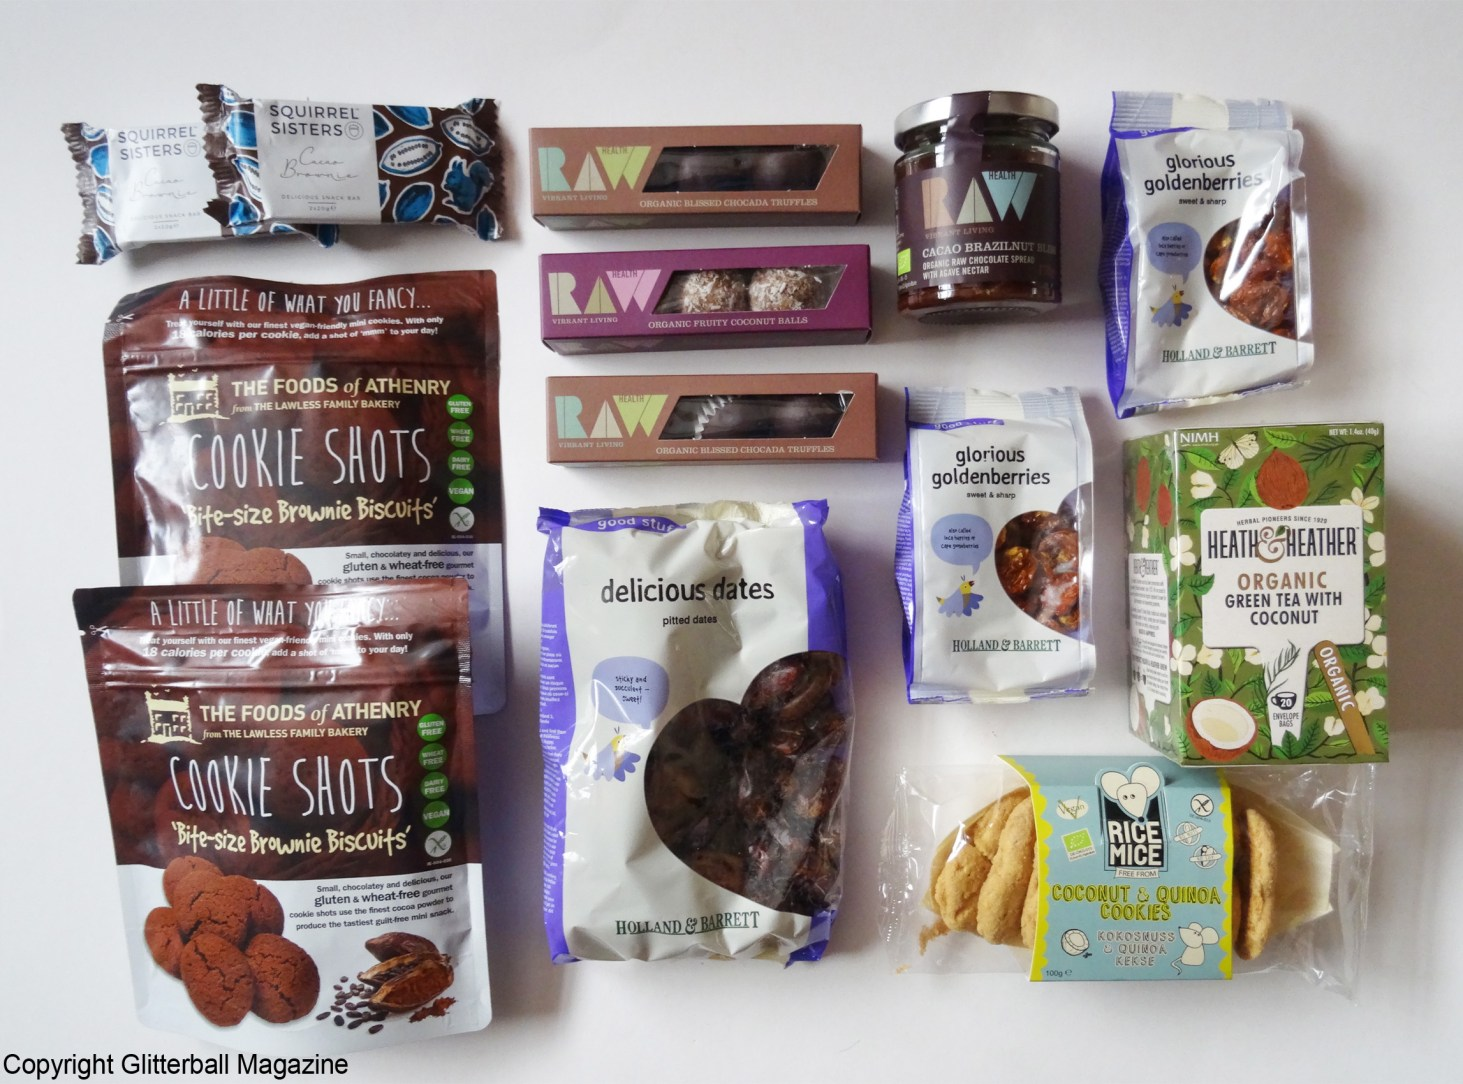 Holland & Barrett - mangiare sano a Londra (e in UK) - www.glitterballmagazine.com